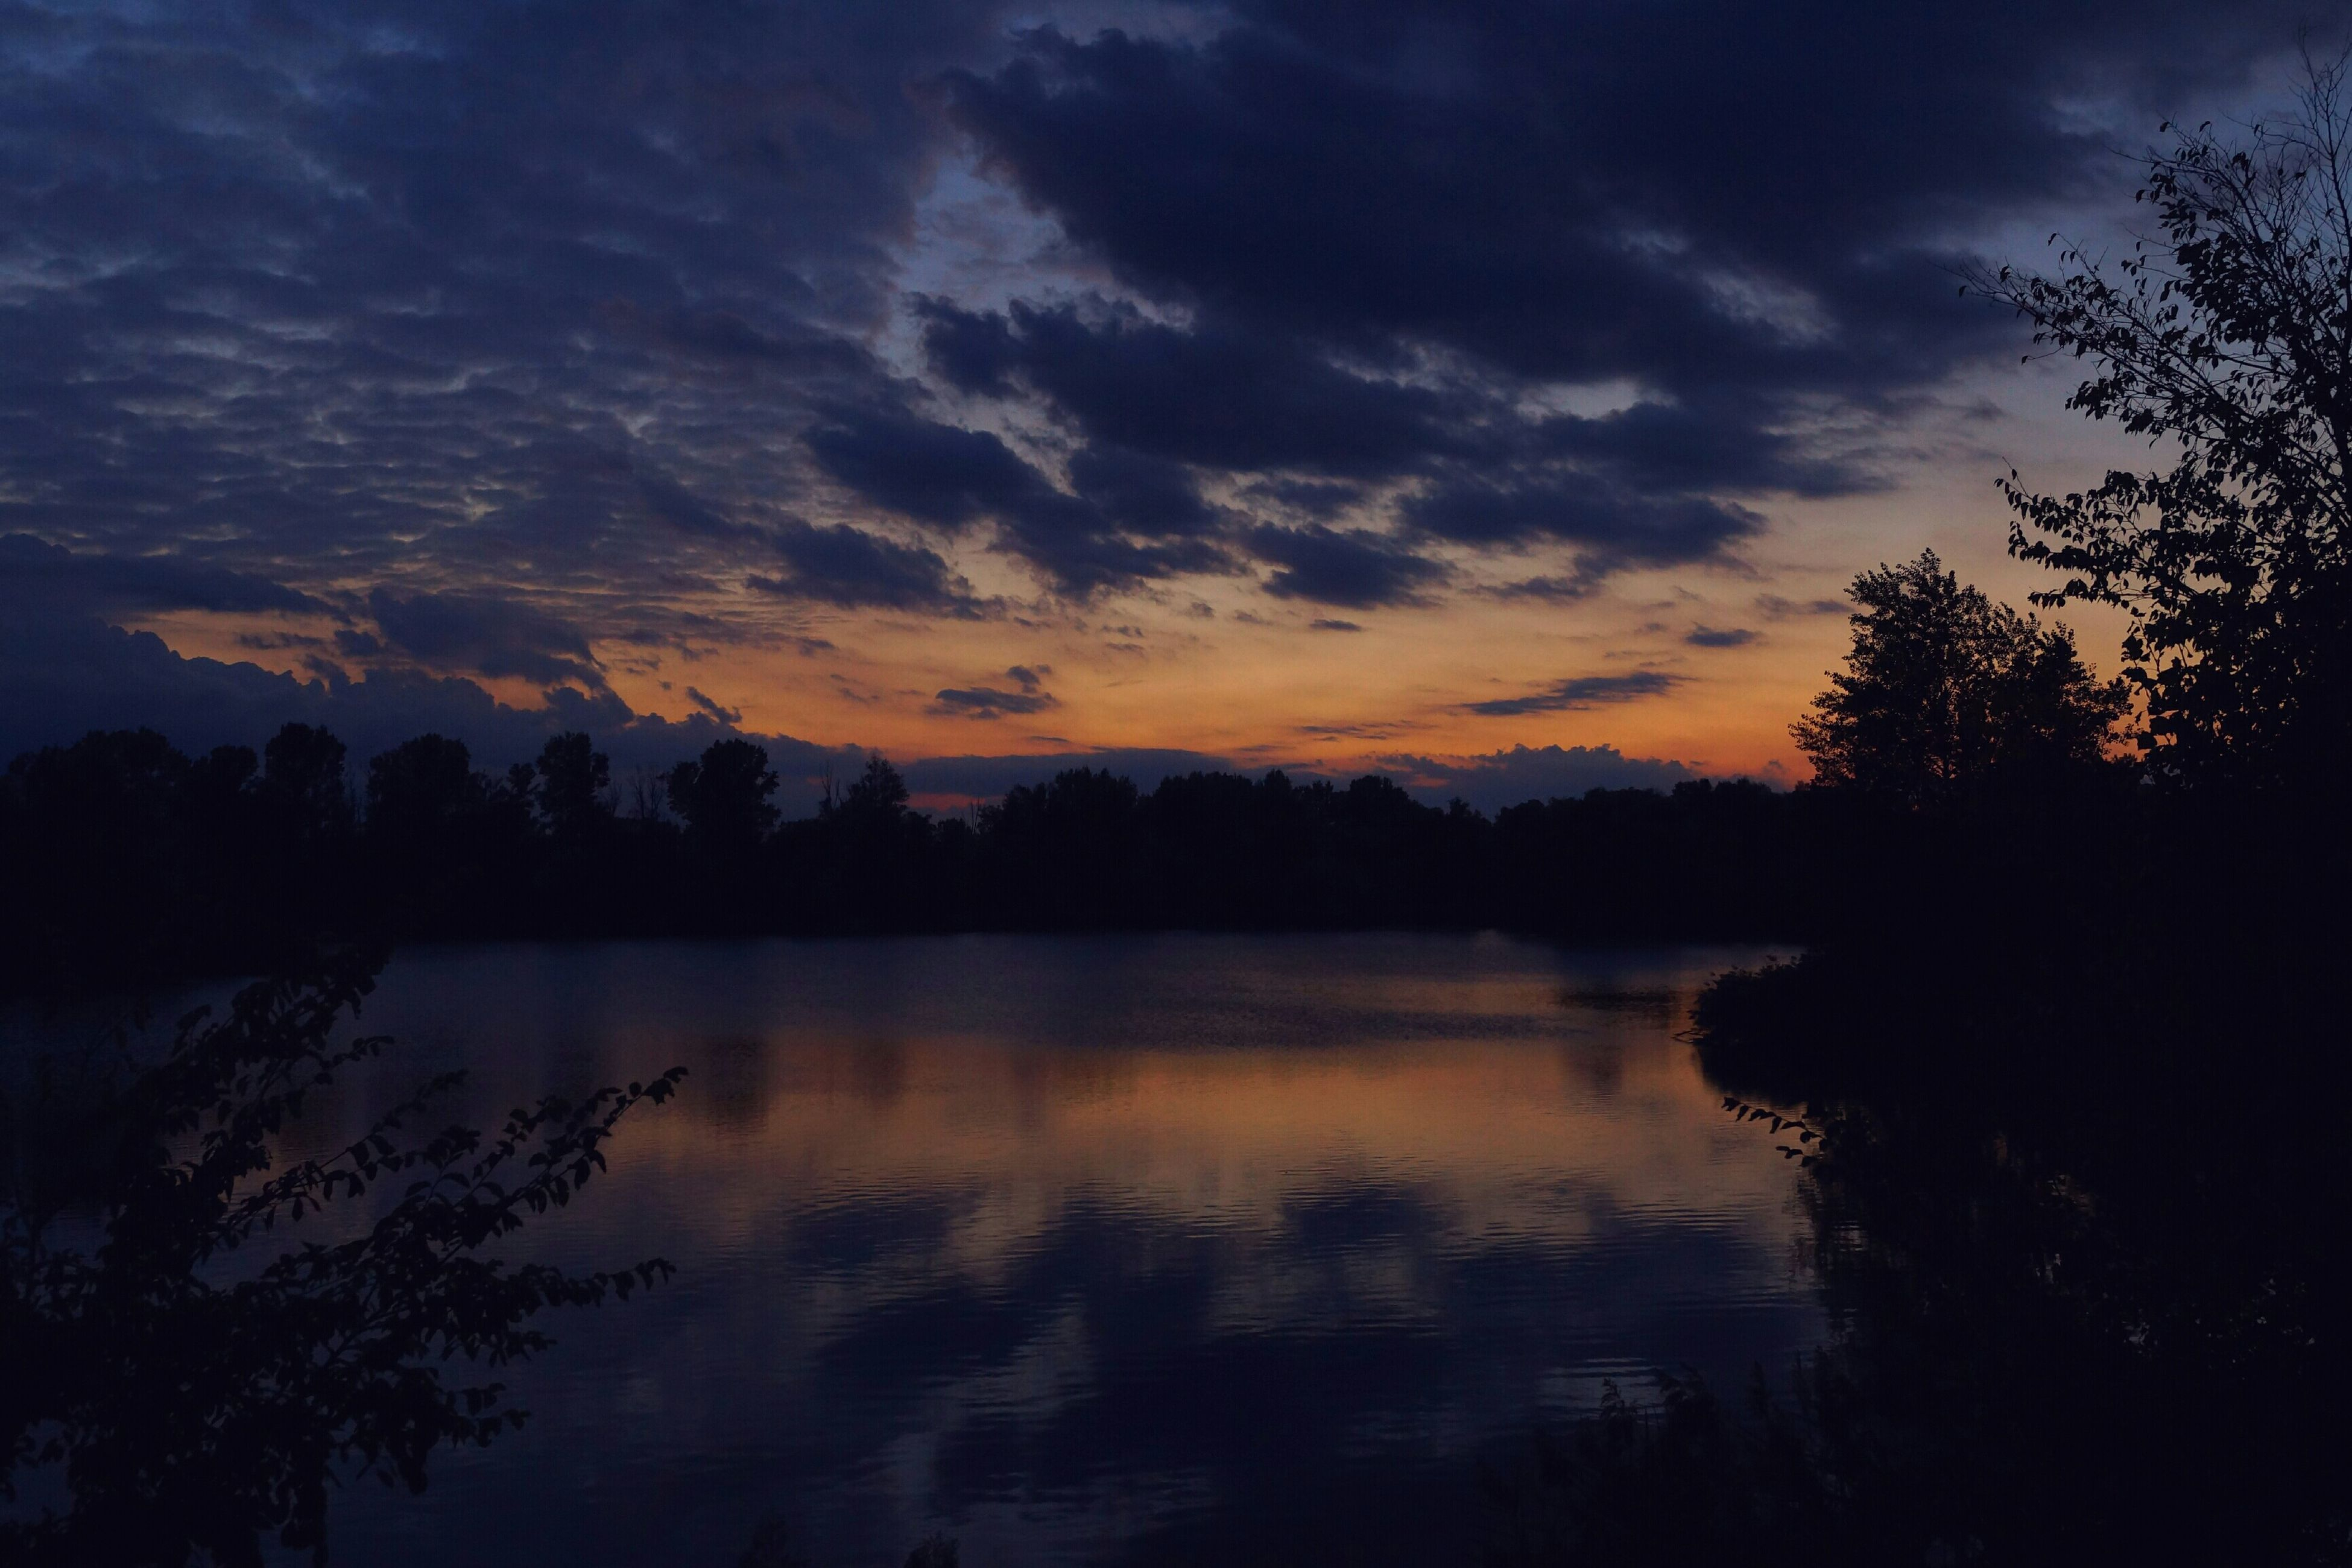 sunset, tranquil scene, scenics, tranquility, sky, water, beauty in nature, tree, silhouette, reflection, lake, cloud - sky, nature, idyllic, cloud, orange color, waterfront, calm, river, dusk